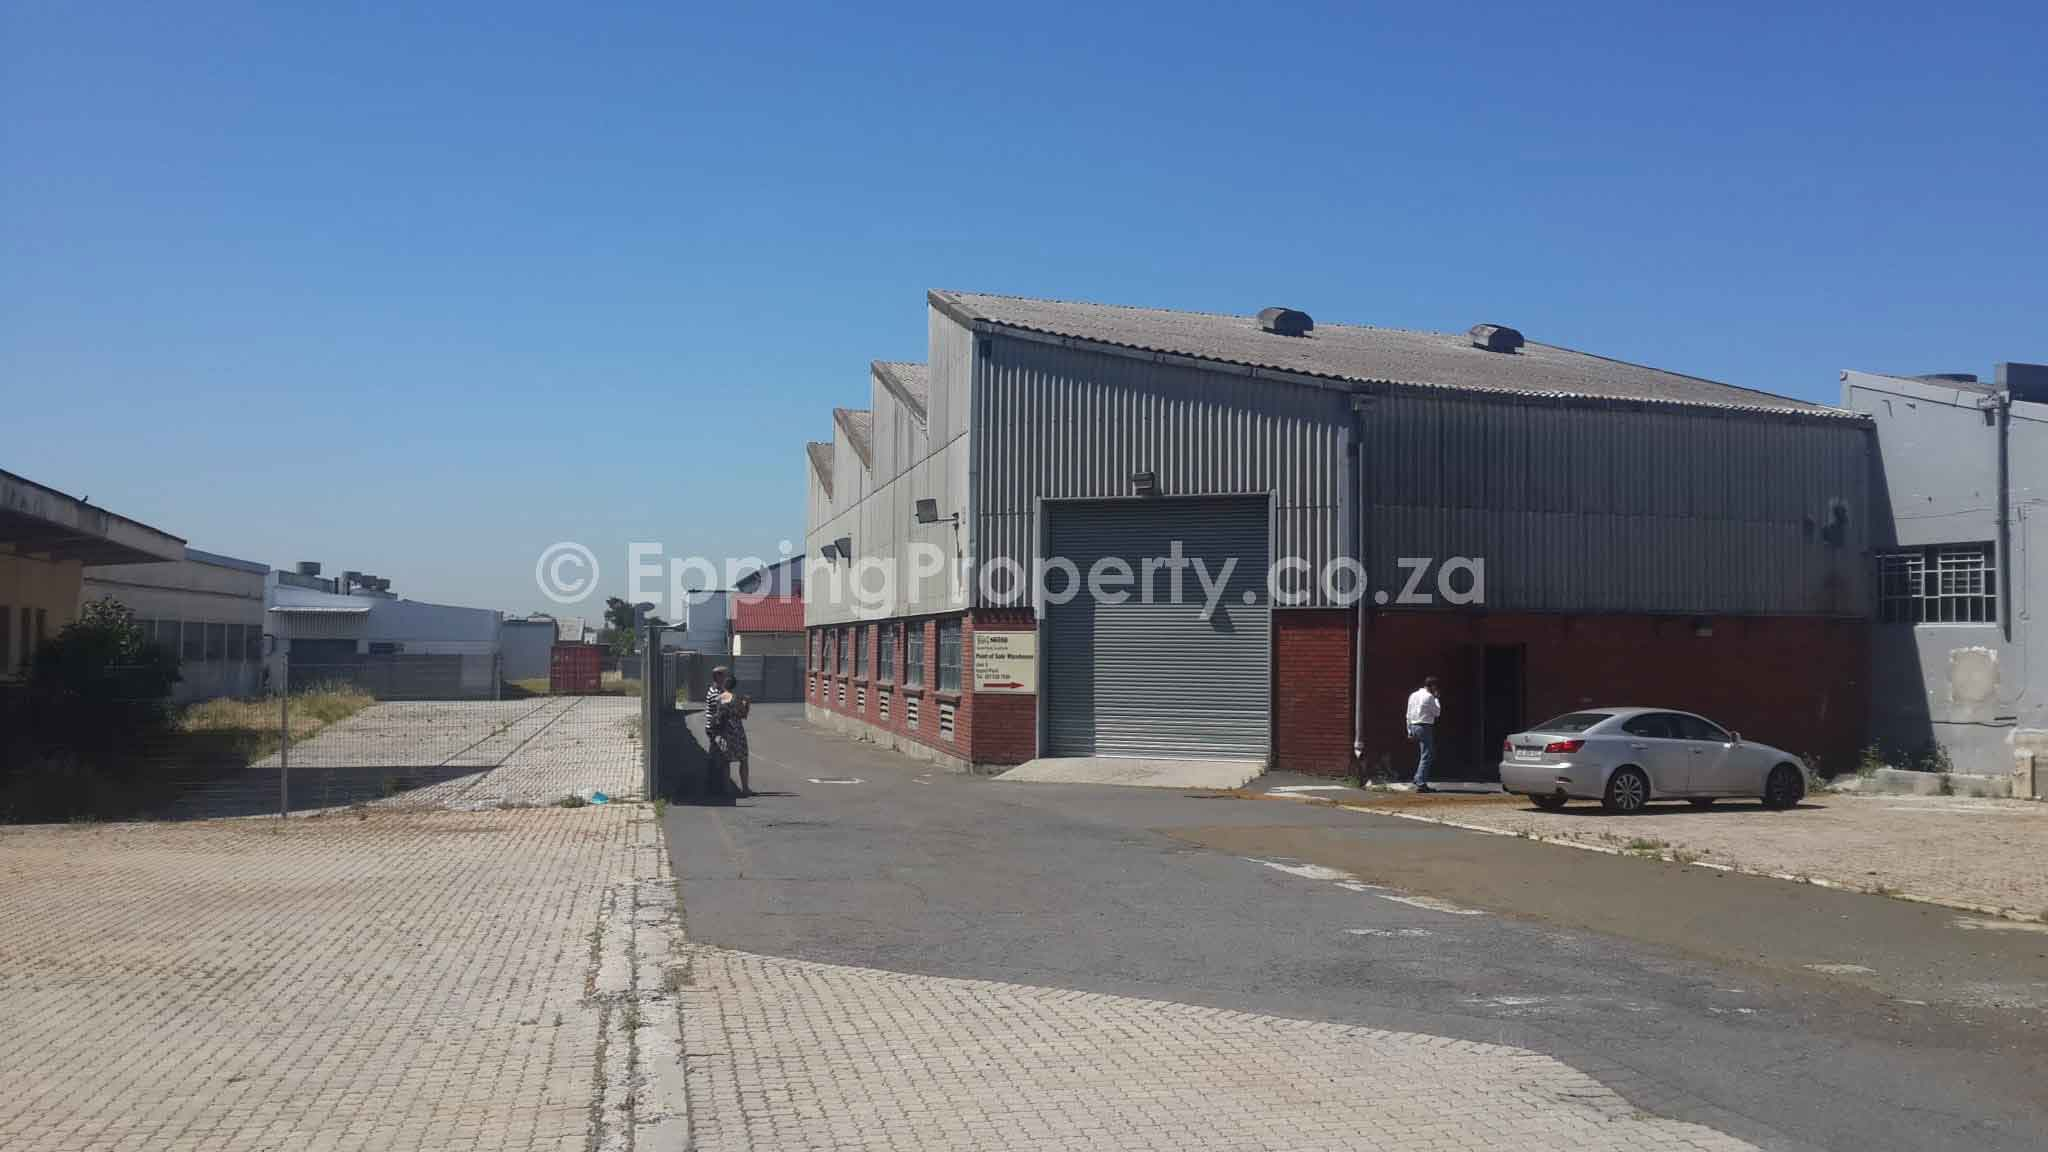 Industrial premises to let in Ndabeni